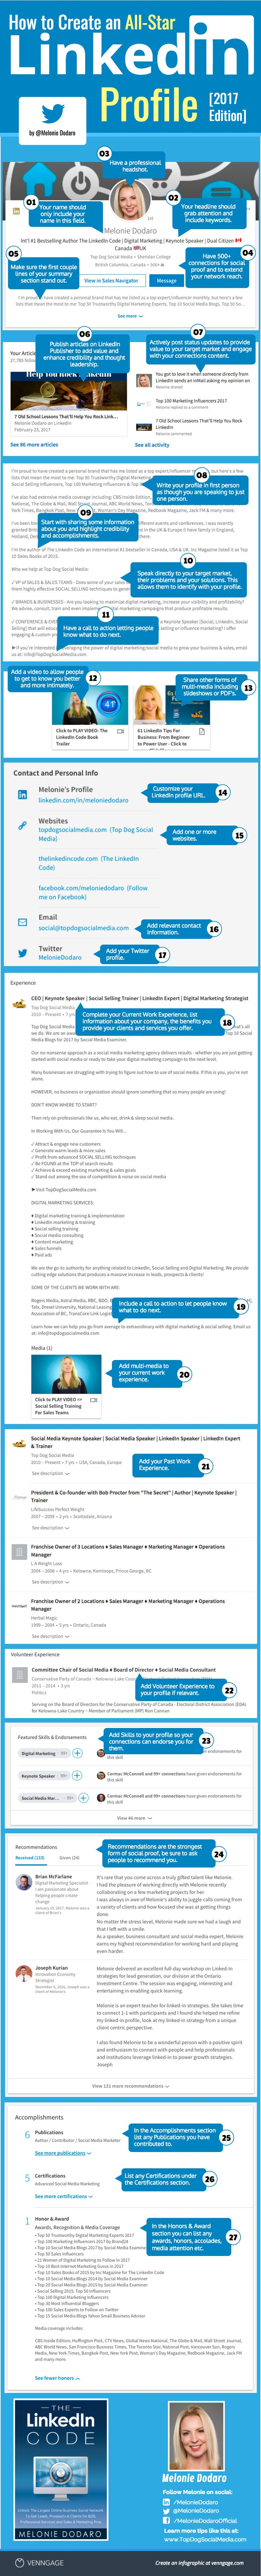 How to Create an All-Star LinkedIn Profile #Infographic #LinkedIn #SocialMedia